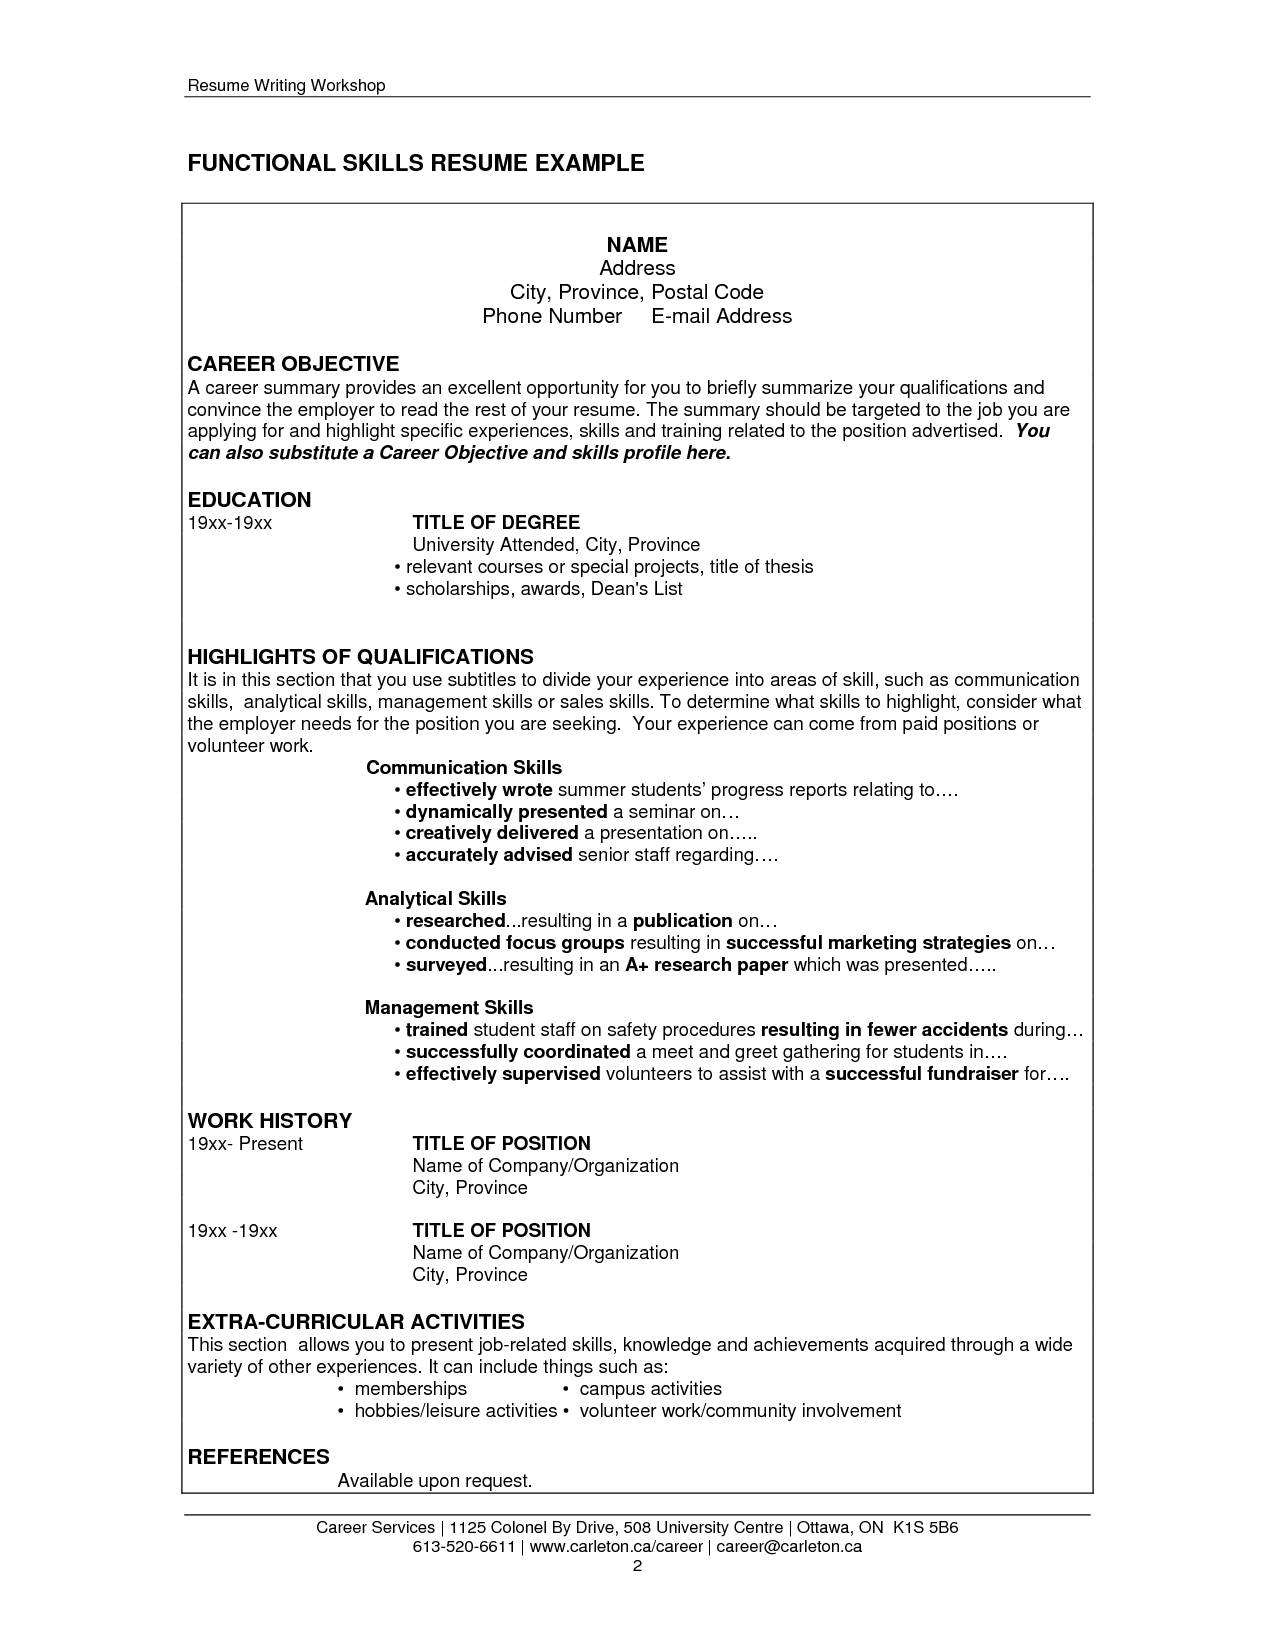 Examples Resume Skills  Resume Skills And Abilities Examples